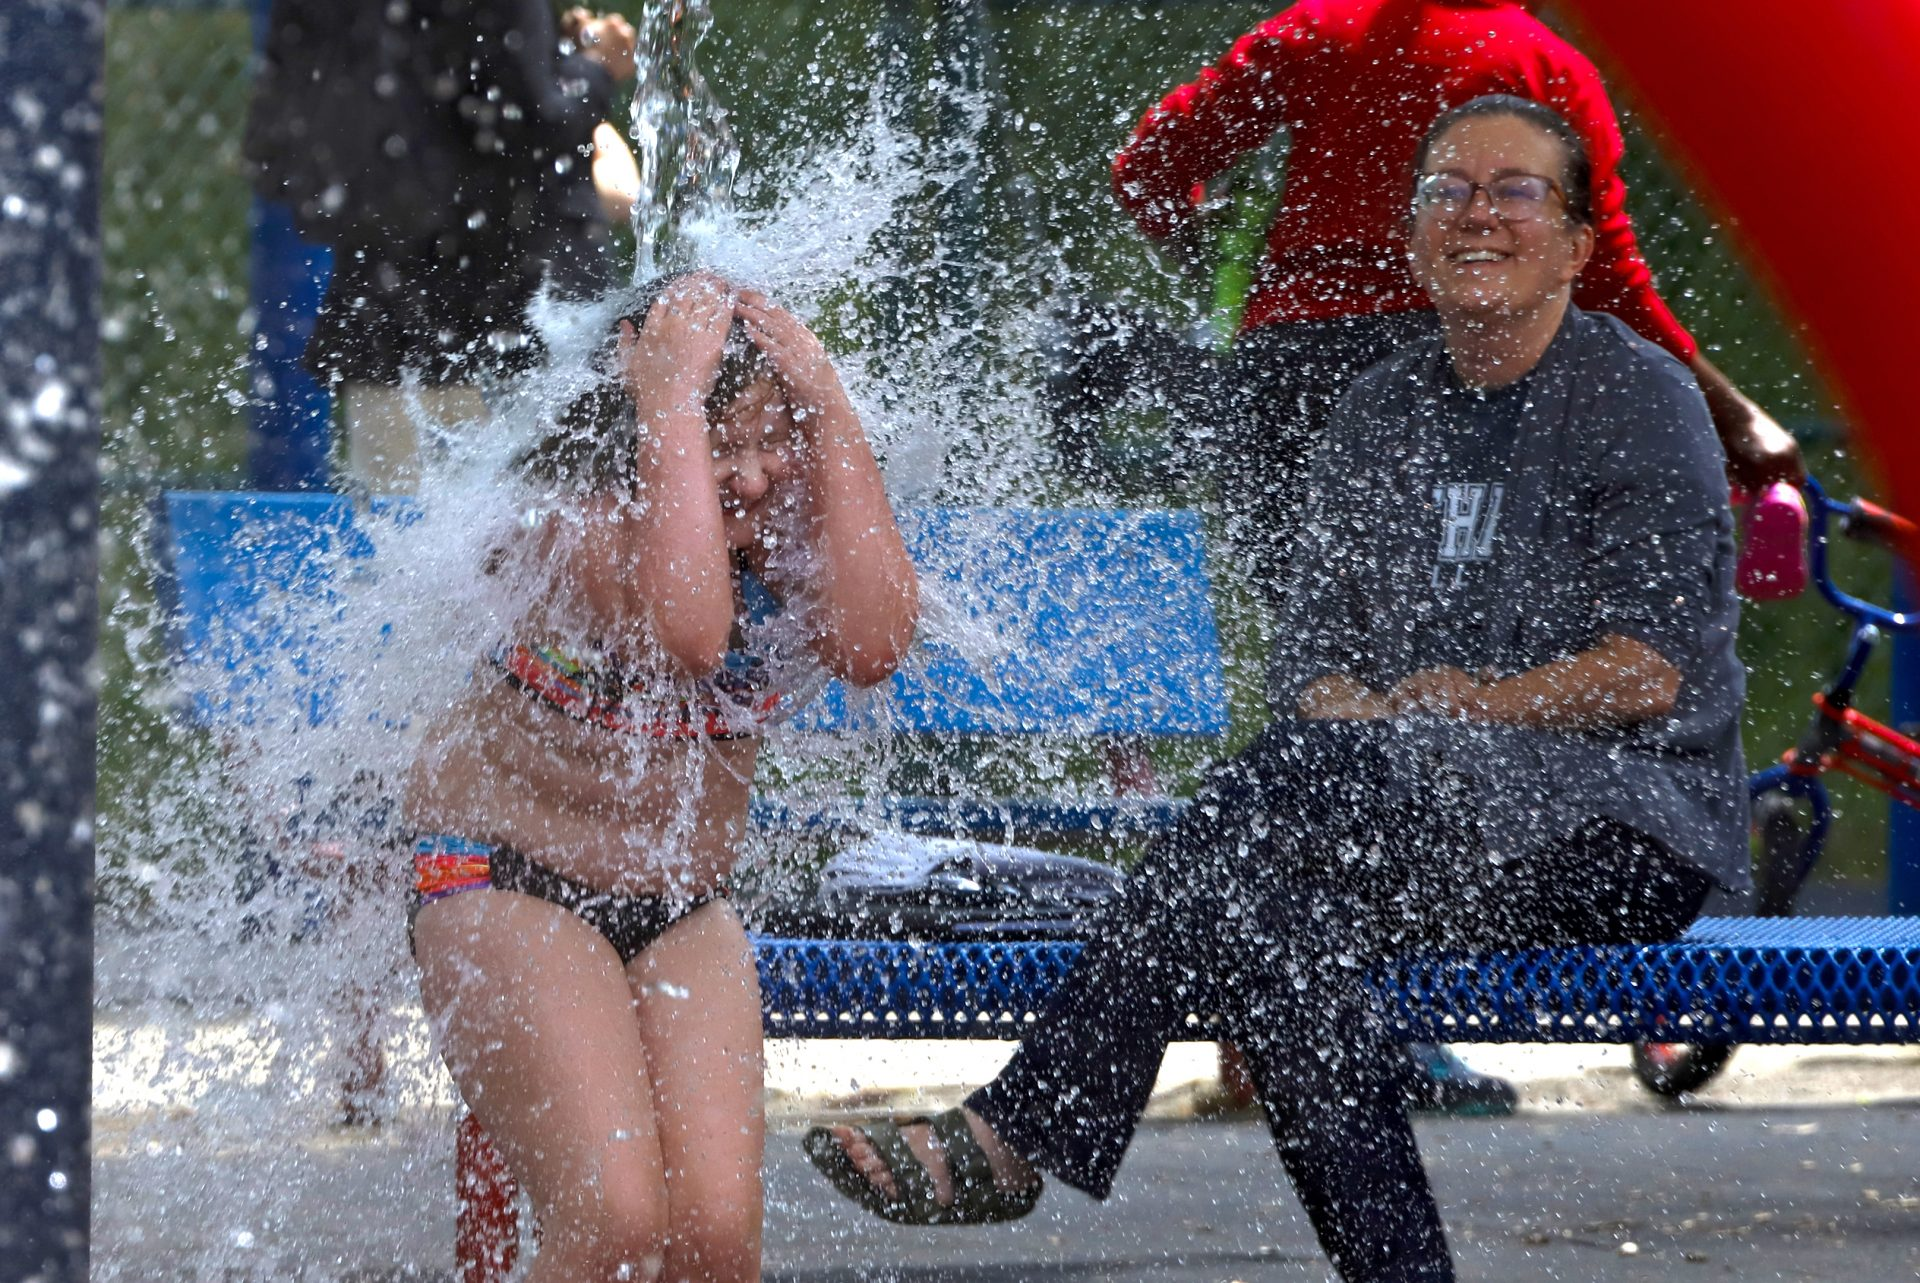 Katie Pawlowski, 8, left, plays in the spray park in the Squirrel Hill neighborhood of Pittsburgh with her mother Stephanie looking on, Monday, June 15, 2020. It was the first day that the City of Pittsburgh spray parks were reopened with Allegheny County now having been in the 'green' phase for two weeks.